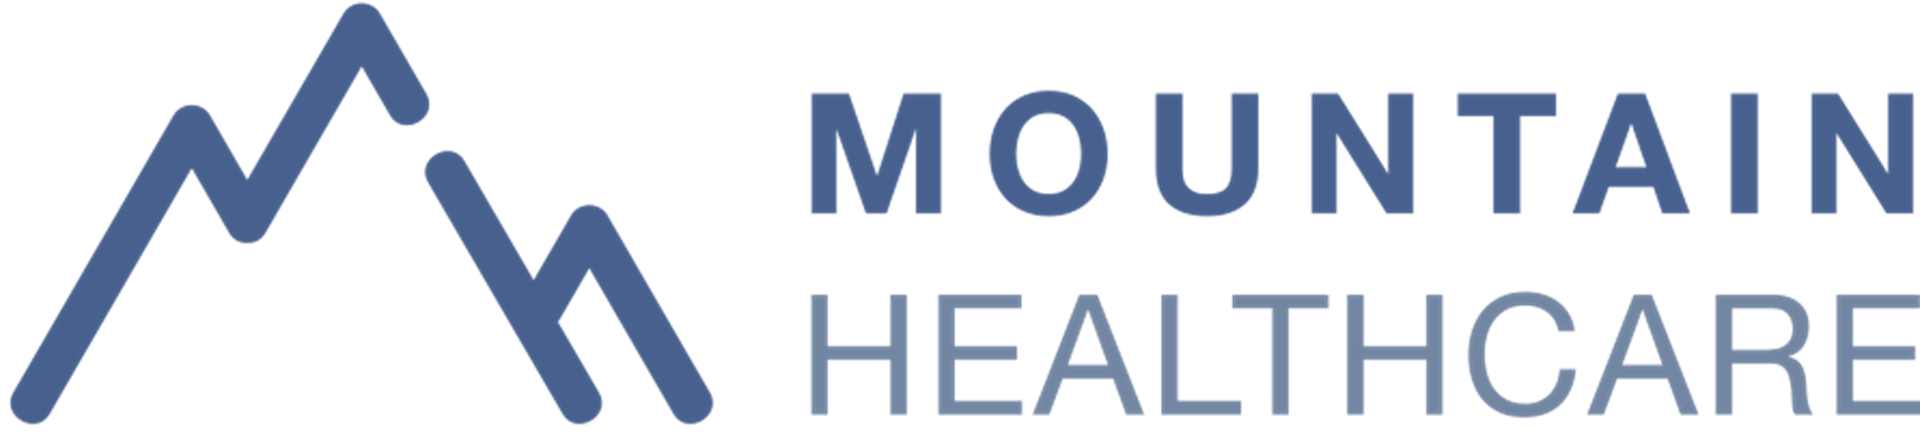 Mountain Healthcare logo